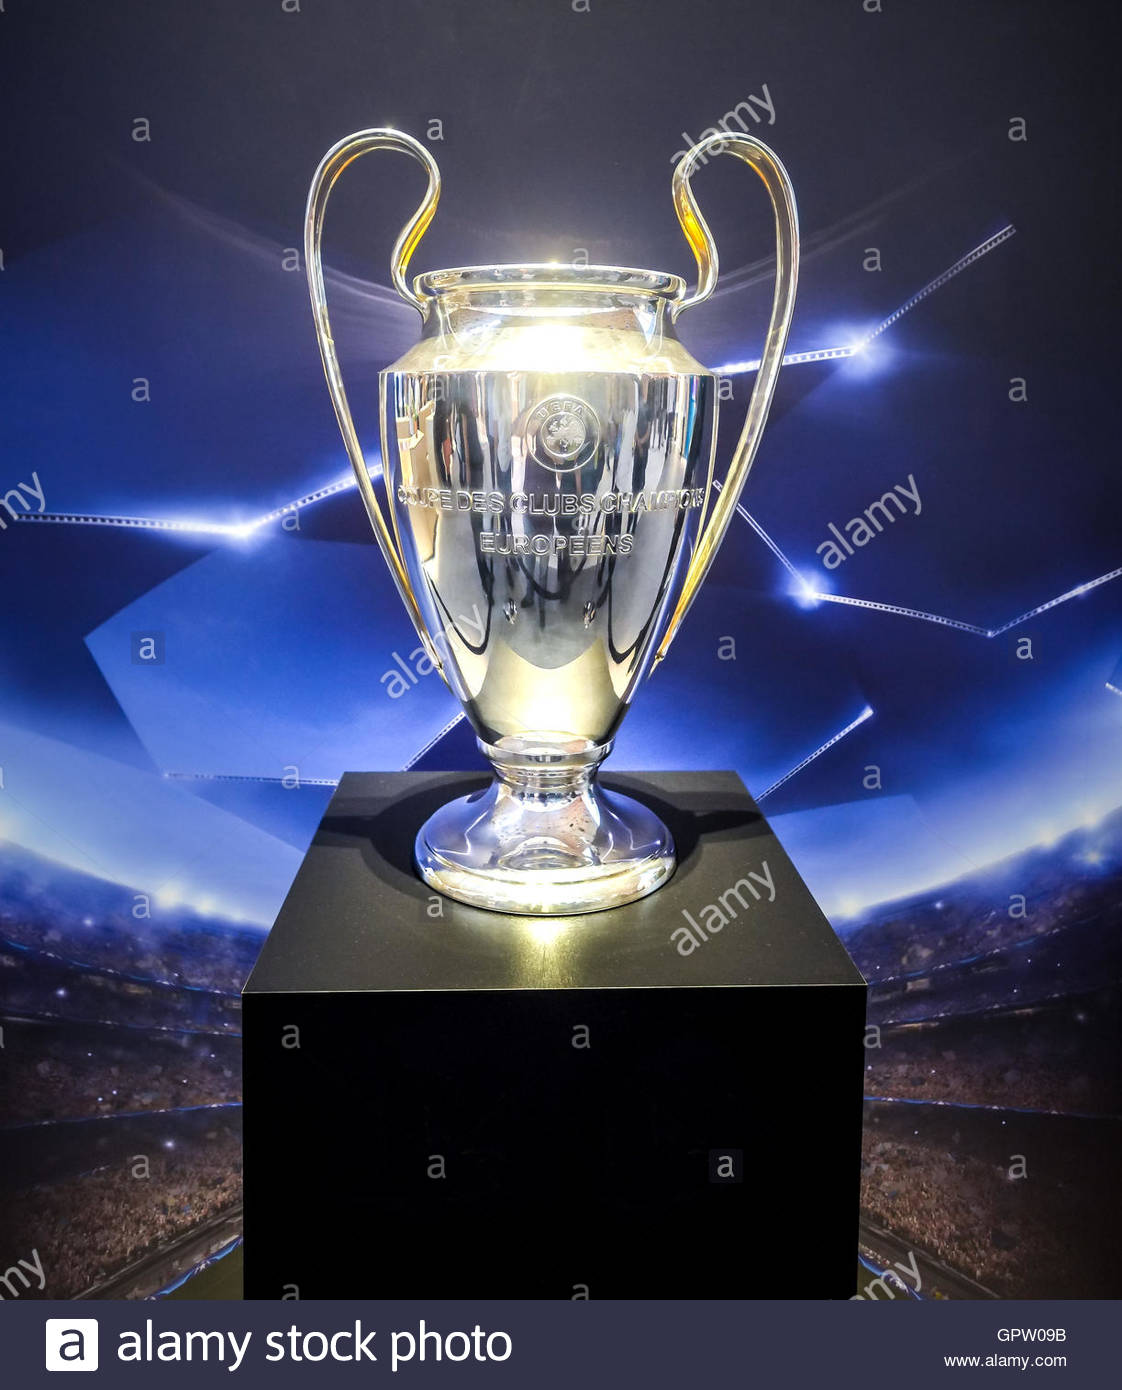 Champions League: Champions League Trophy Stock Photos & Champions League